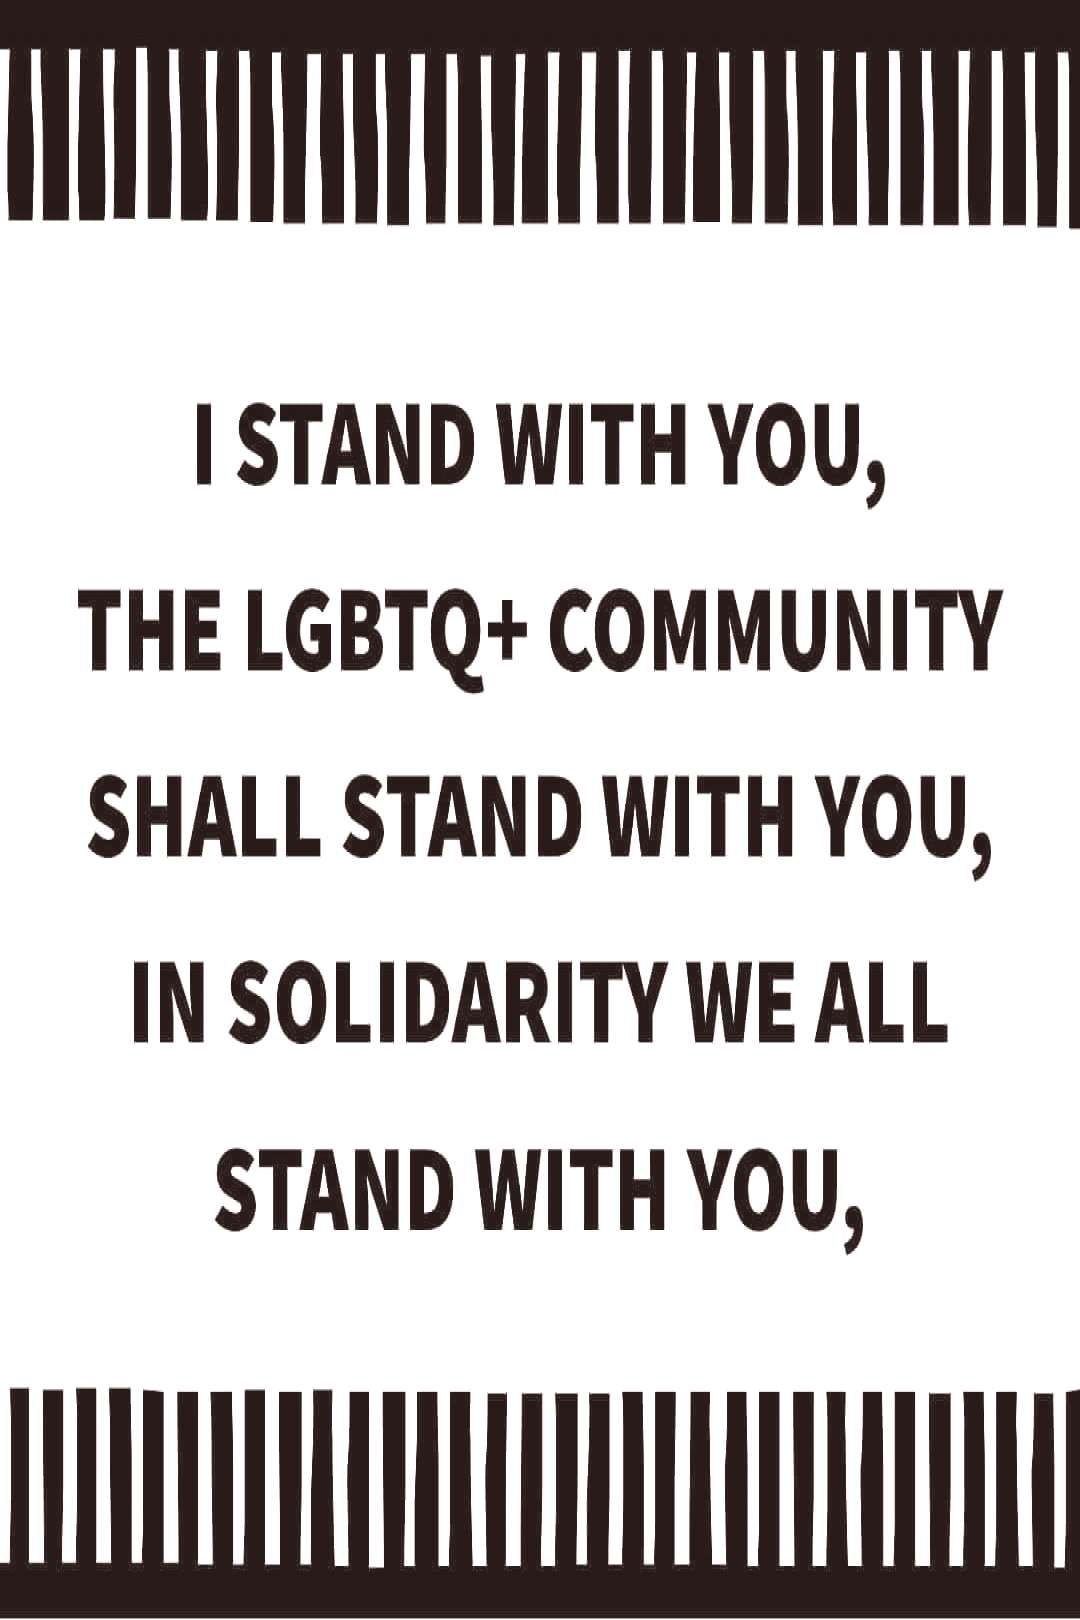 OfficialCJWalker on June 02 2020 text that says I STAND WITH YOU